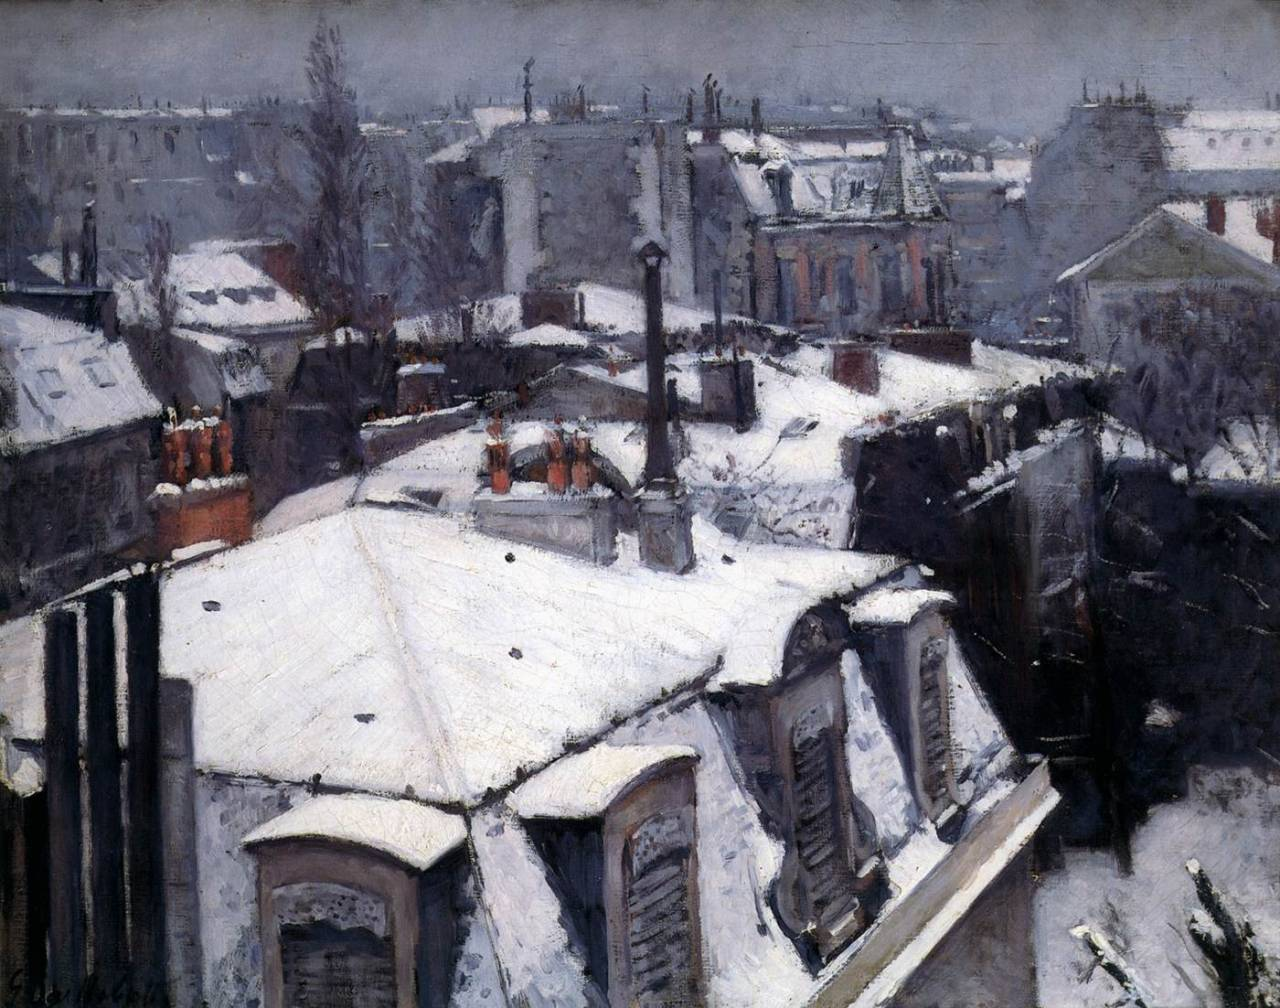 le-desir-de-lautre:  Gustave Caillebotte (French, 1848-1894), Snow-Covered Roofs in Paris, 1878, oil on canvas, 64 x 82 cm, Musée d'Orsay, Paris.